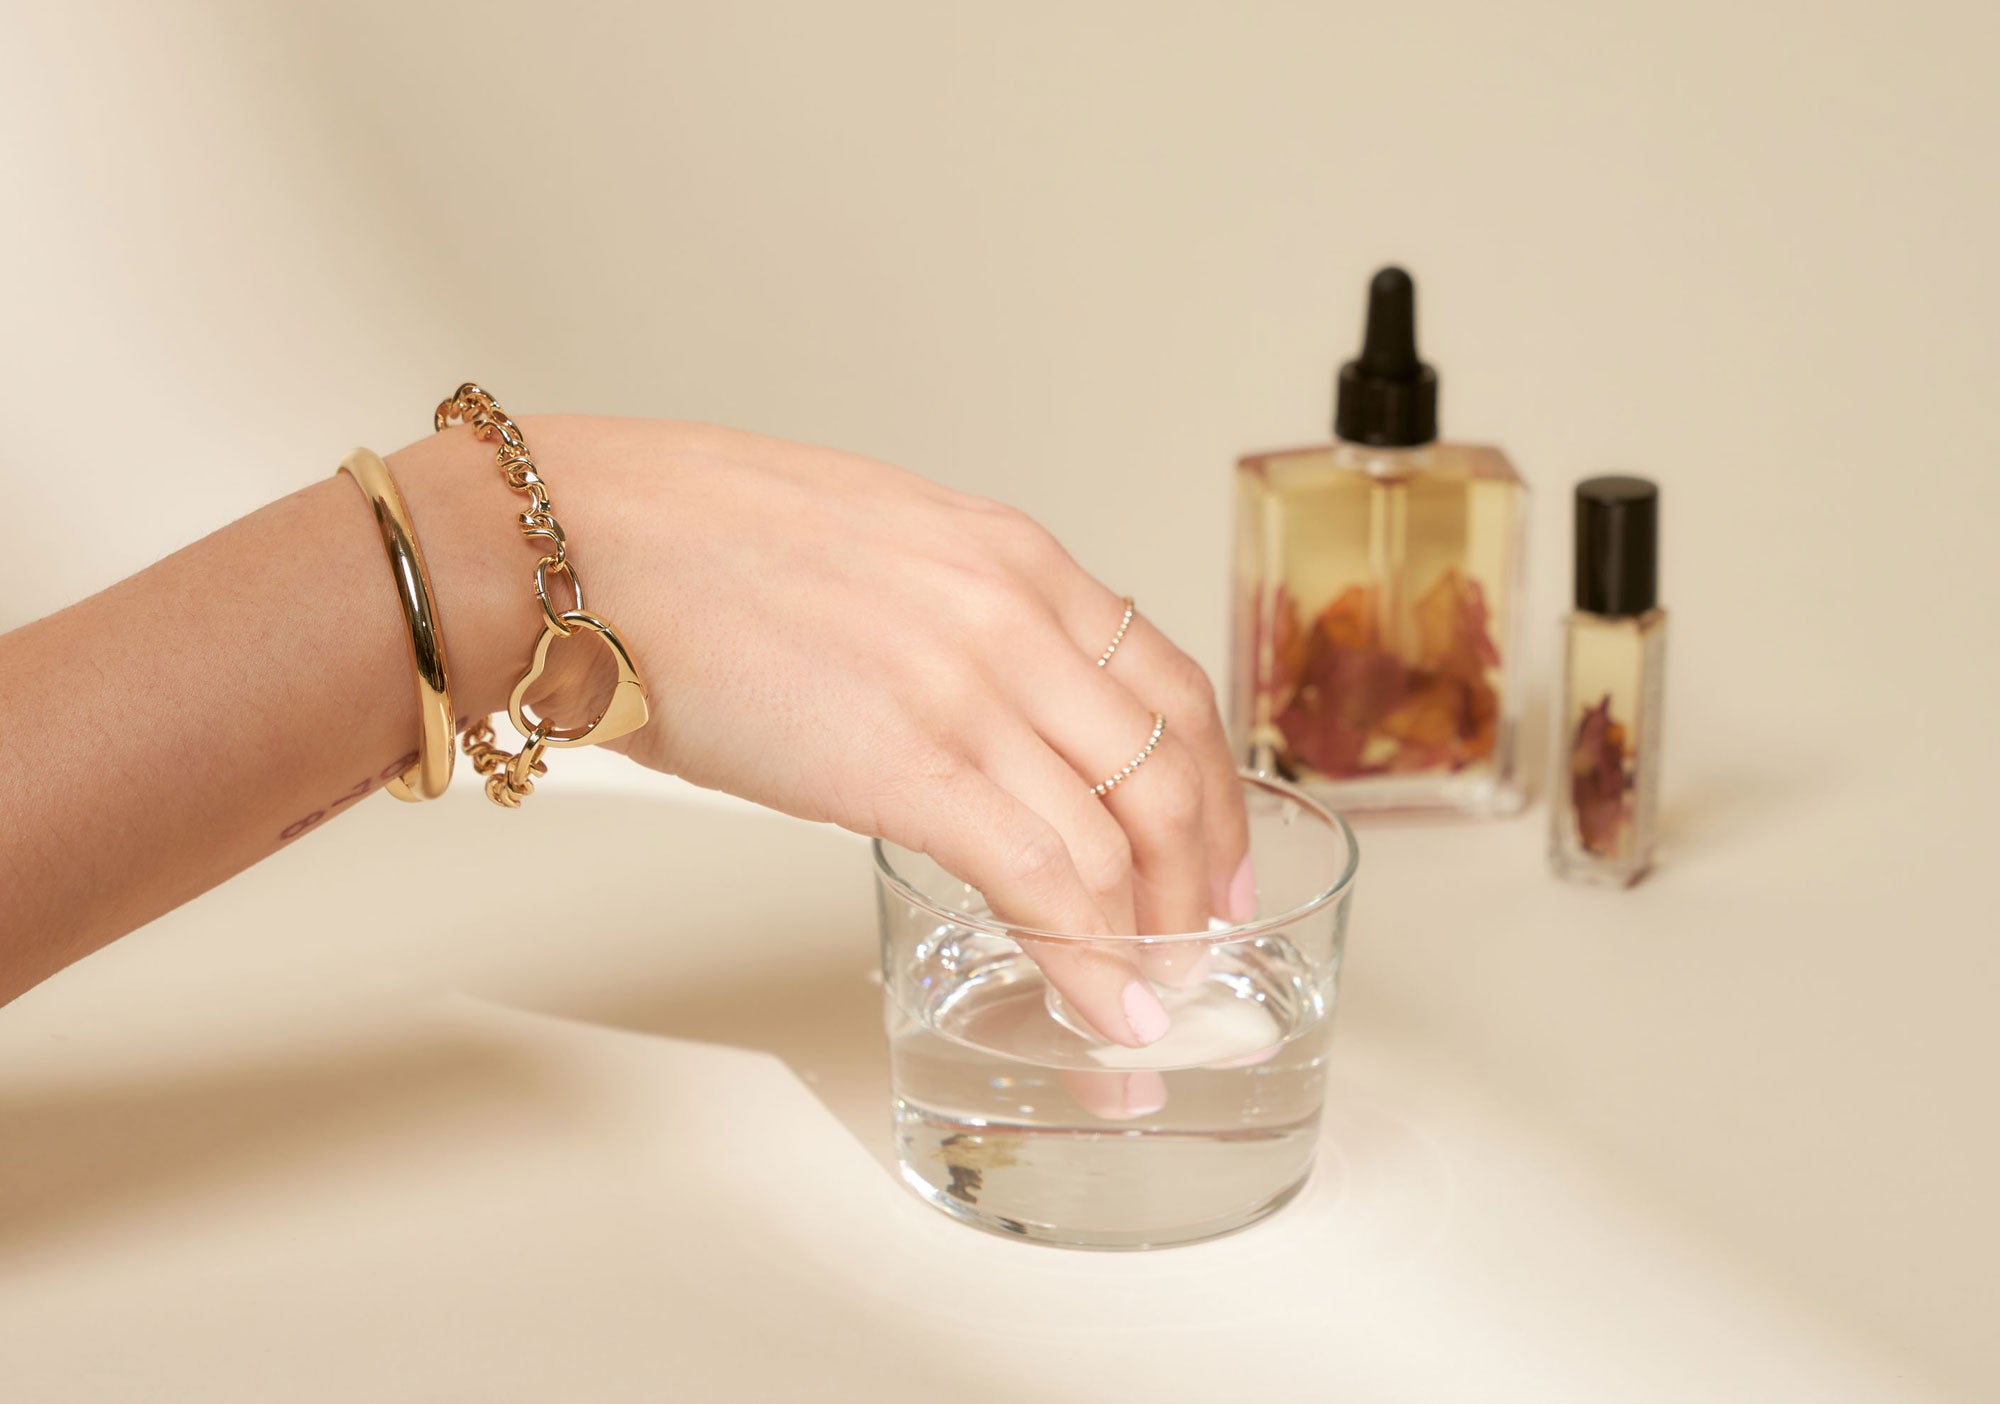 Stay In Touch Image of Hand with Jewelry